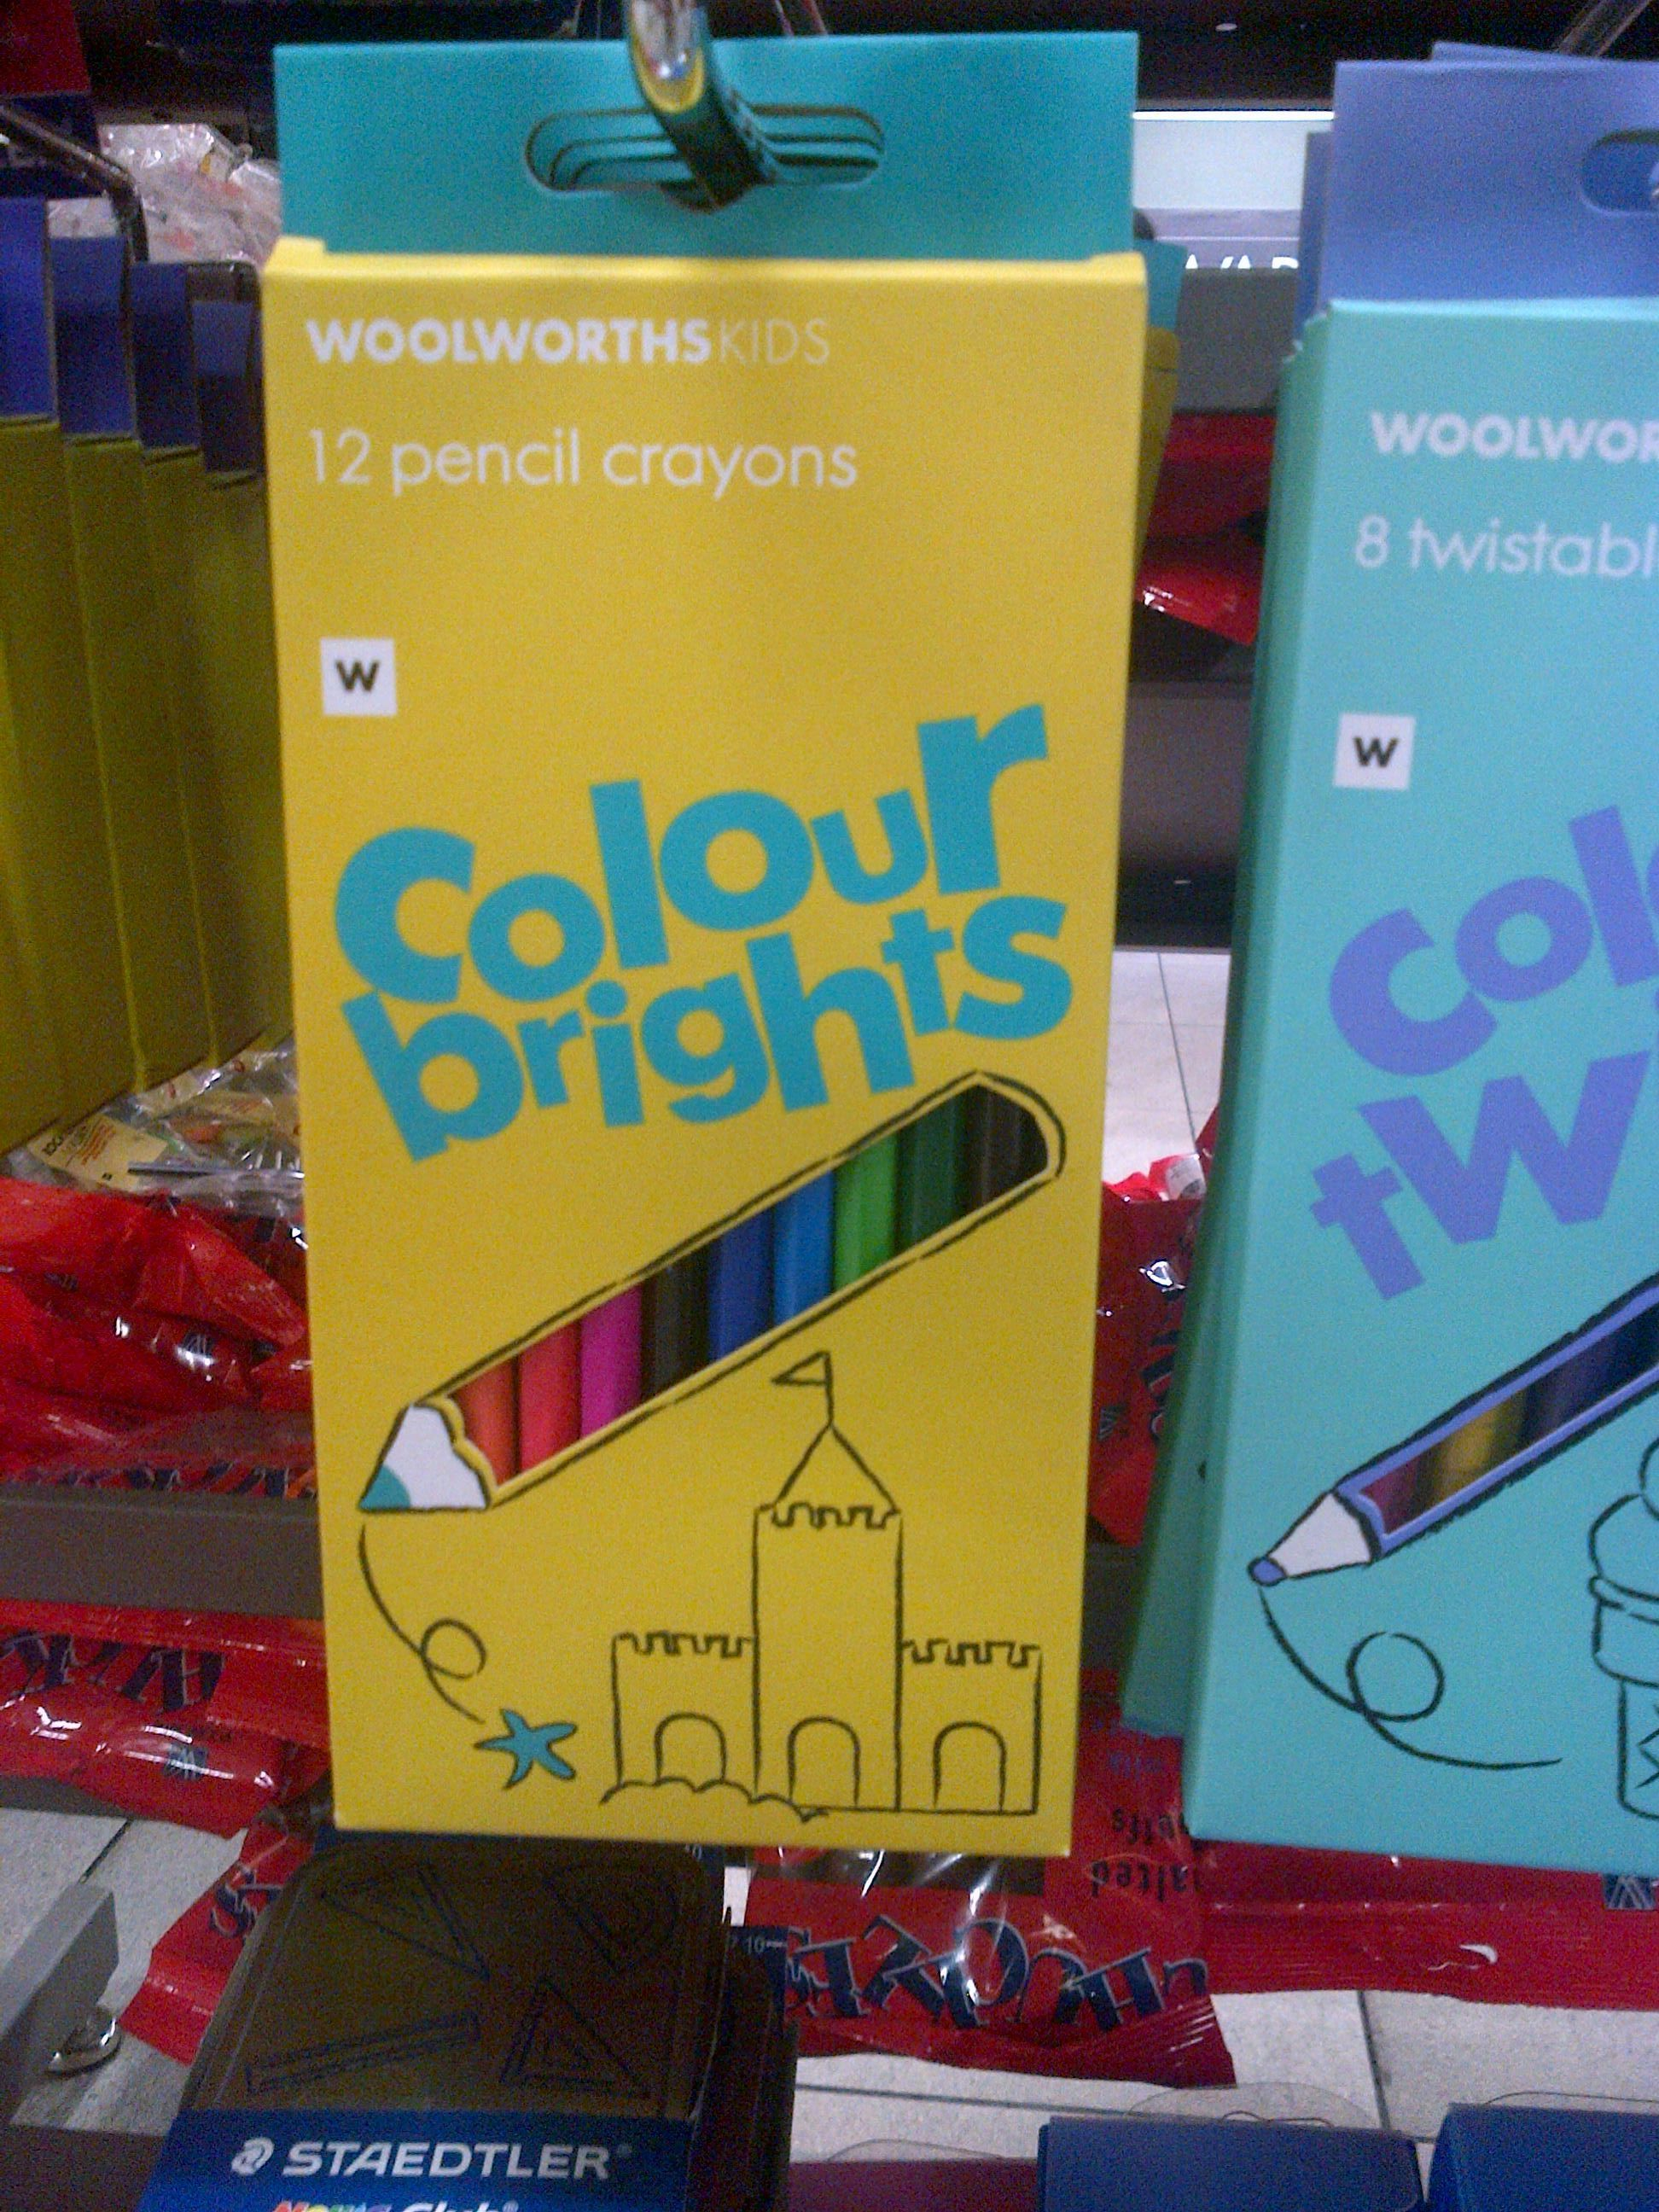 Packaging cut-outs to display the product and enhance the visual branding - WOOLWORTHS